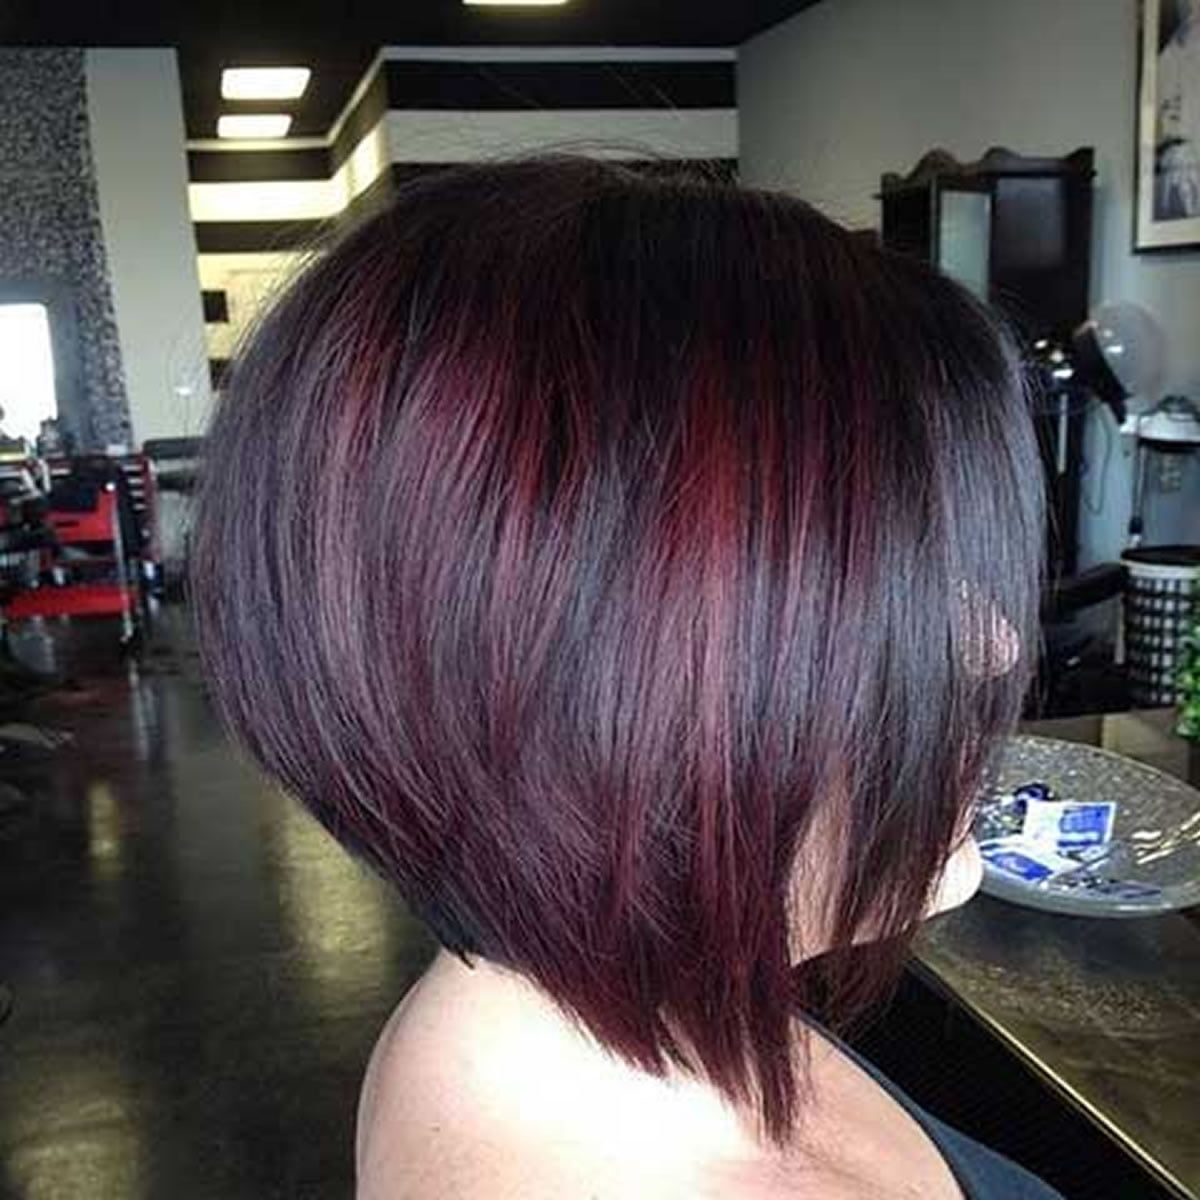 Dark Hair Color Trends 2019: 50 The Coolest Short Hairstyles And Hair Colors For Women